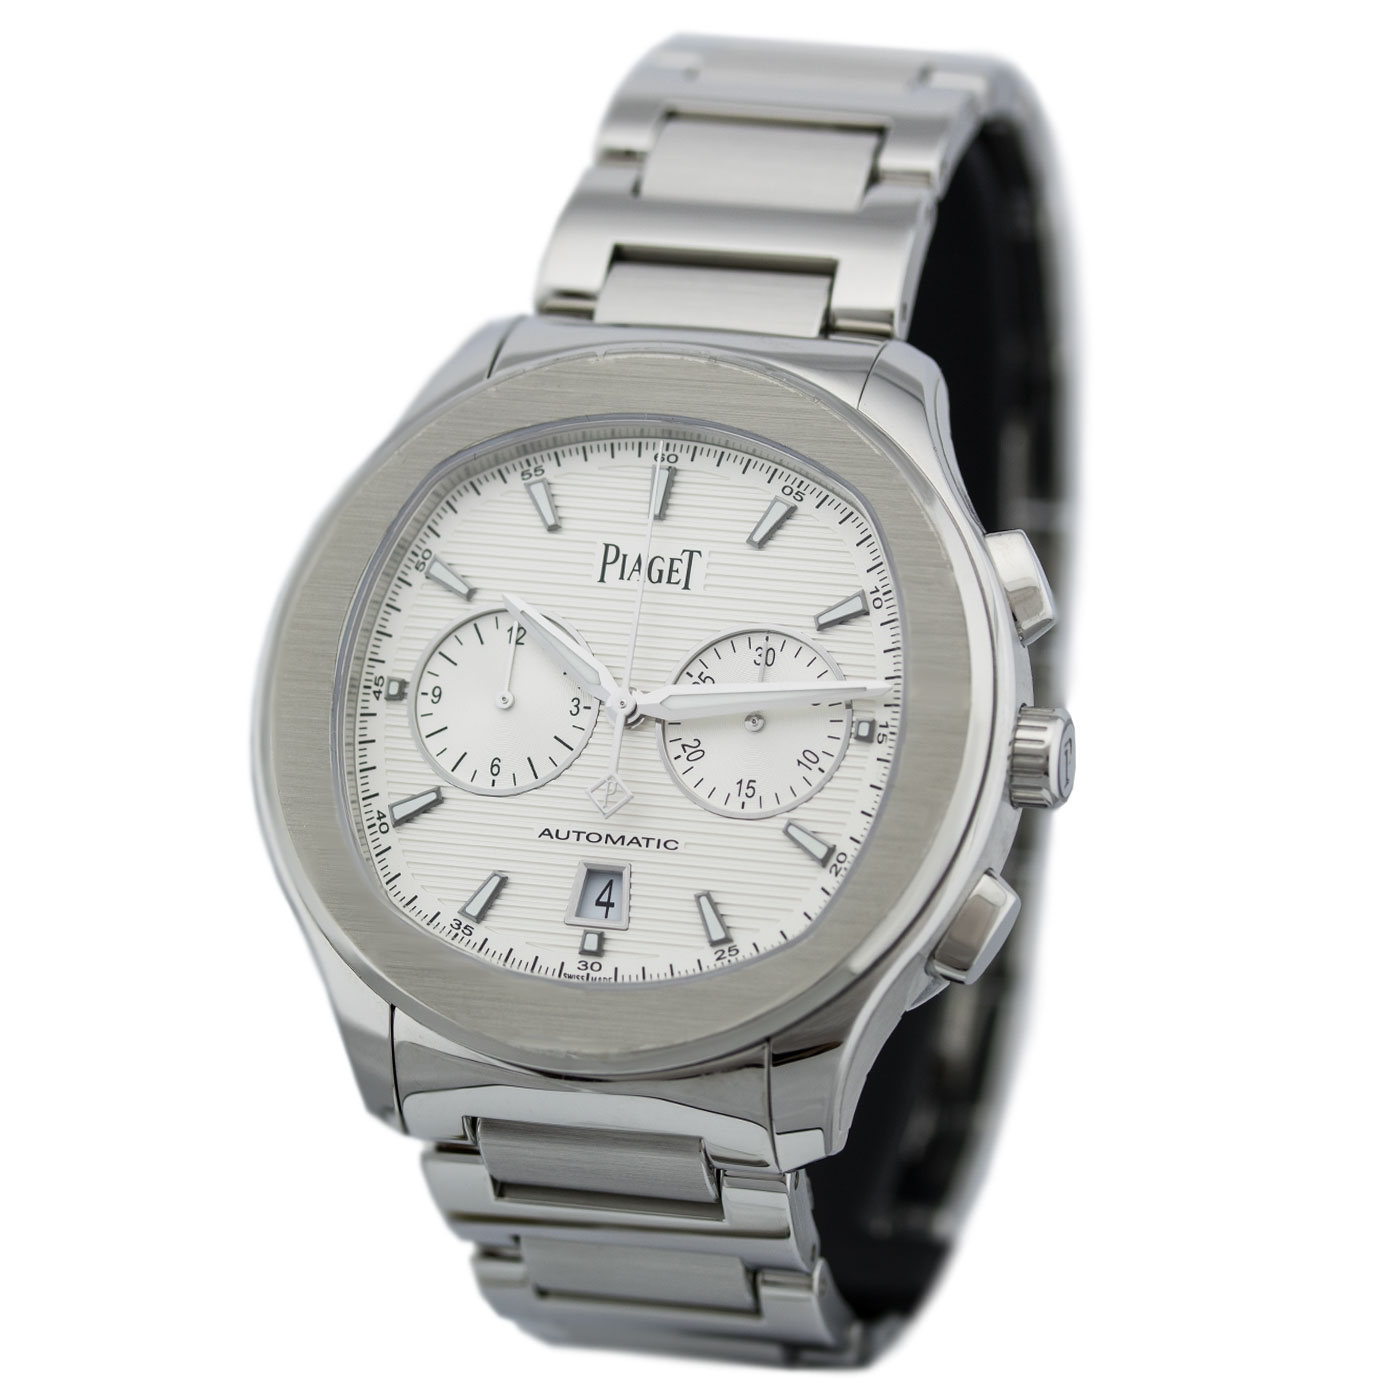 Myfair Com: Piaget Polo S Watch G0A41004 By Watches Of Mayfair